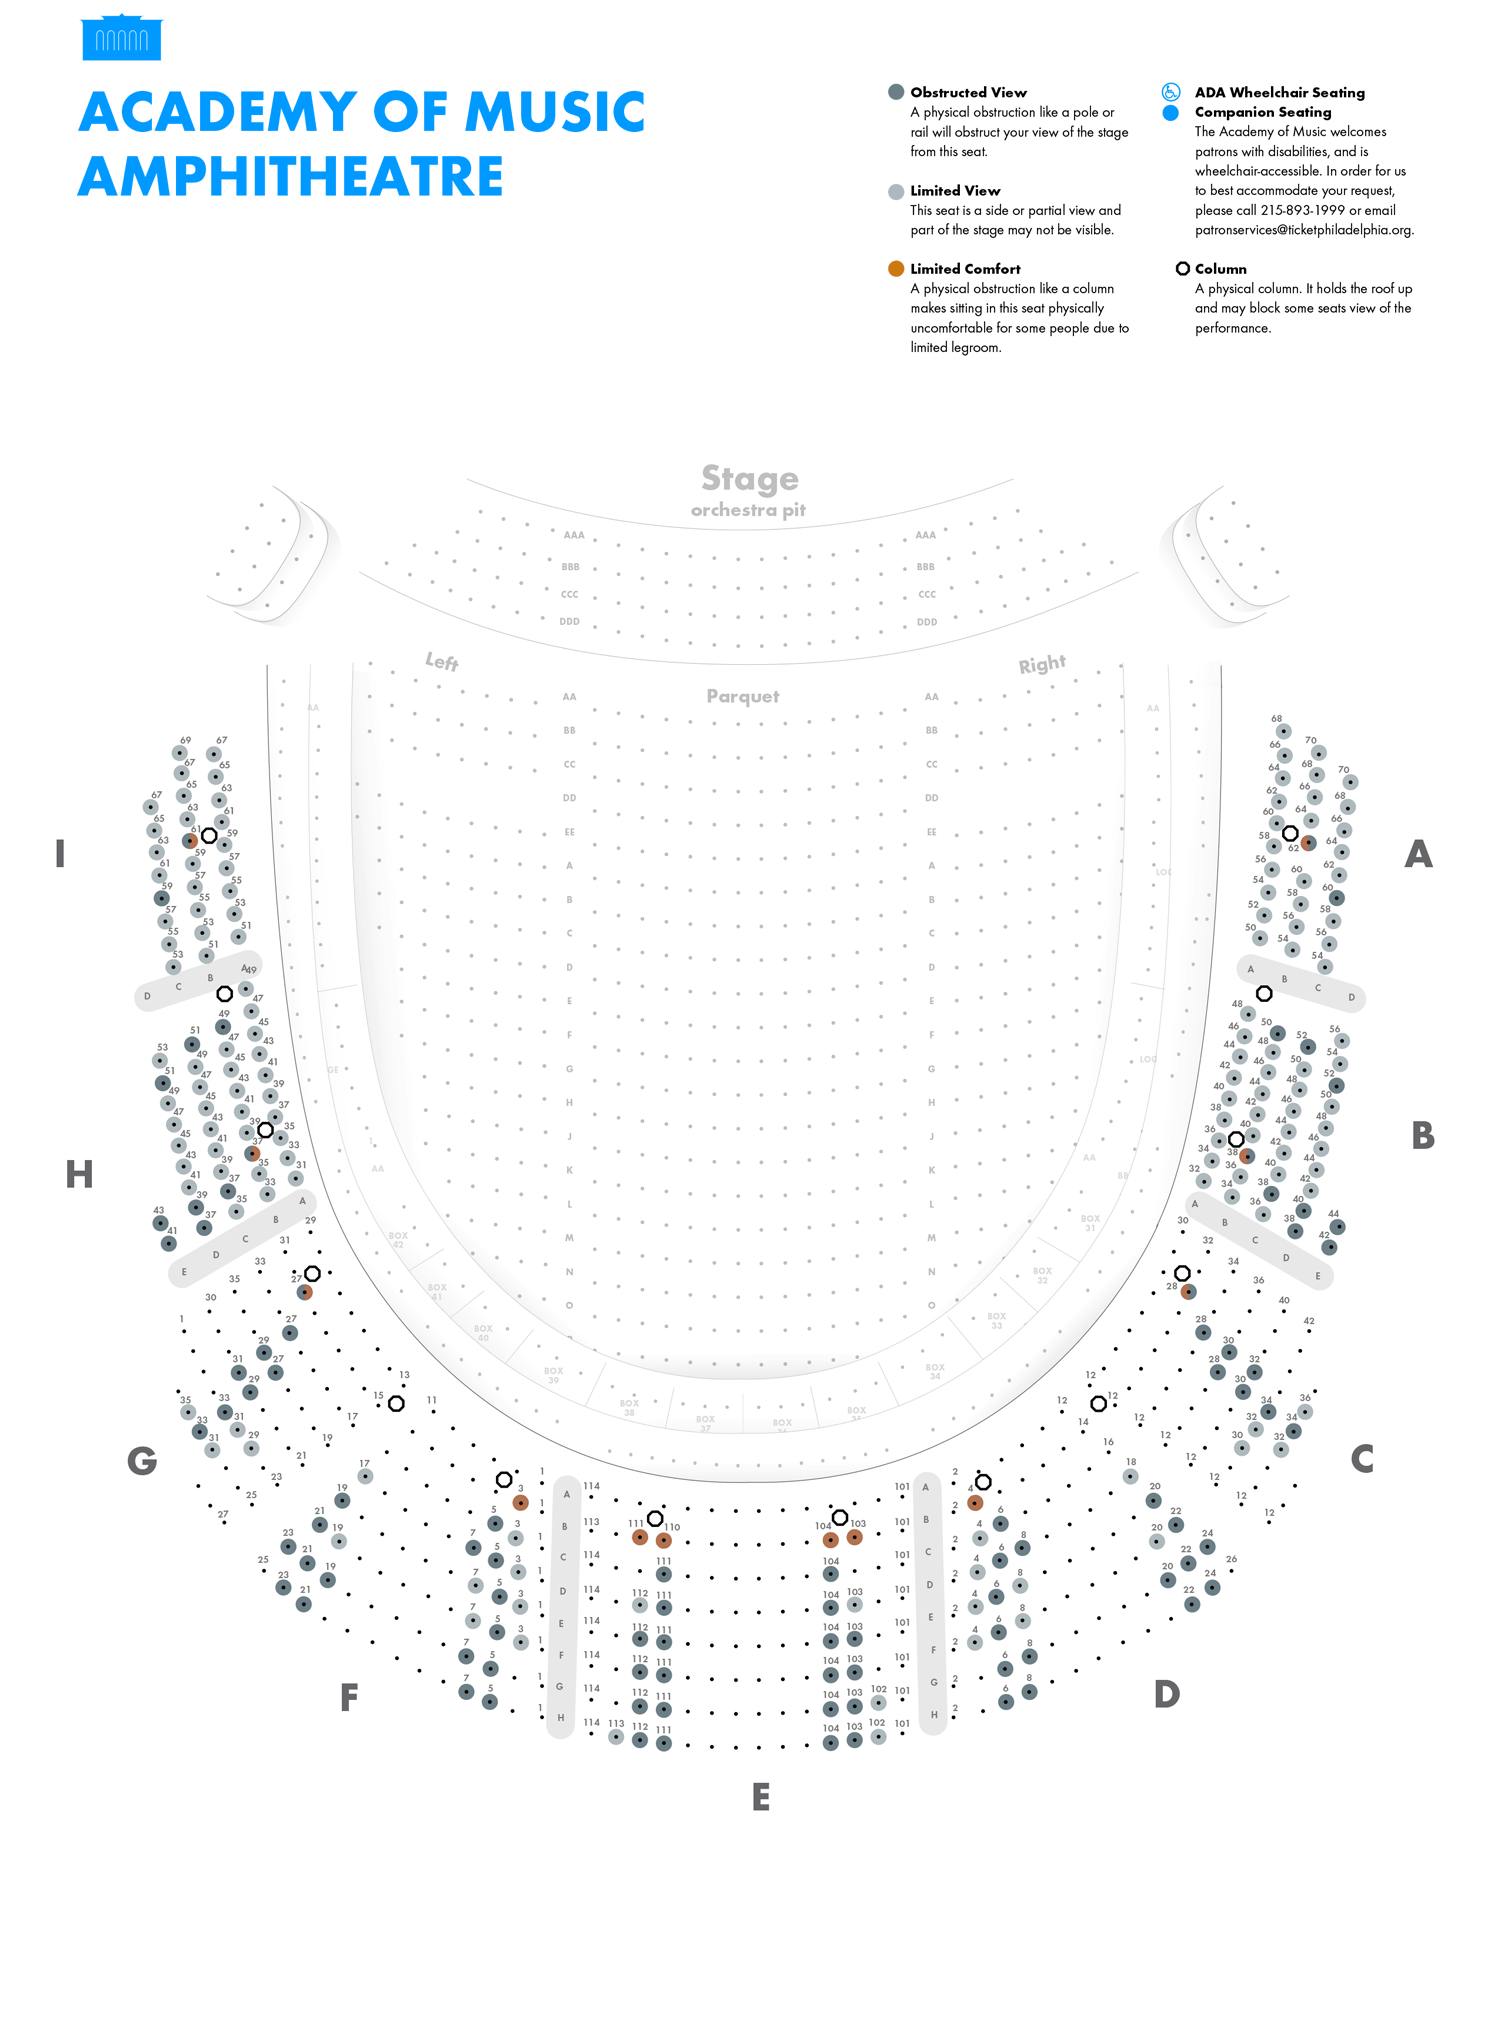 Academy of Music - Amphitheater - Seating Chart